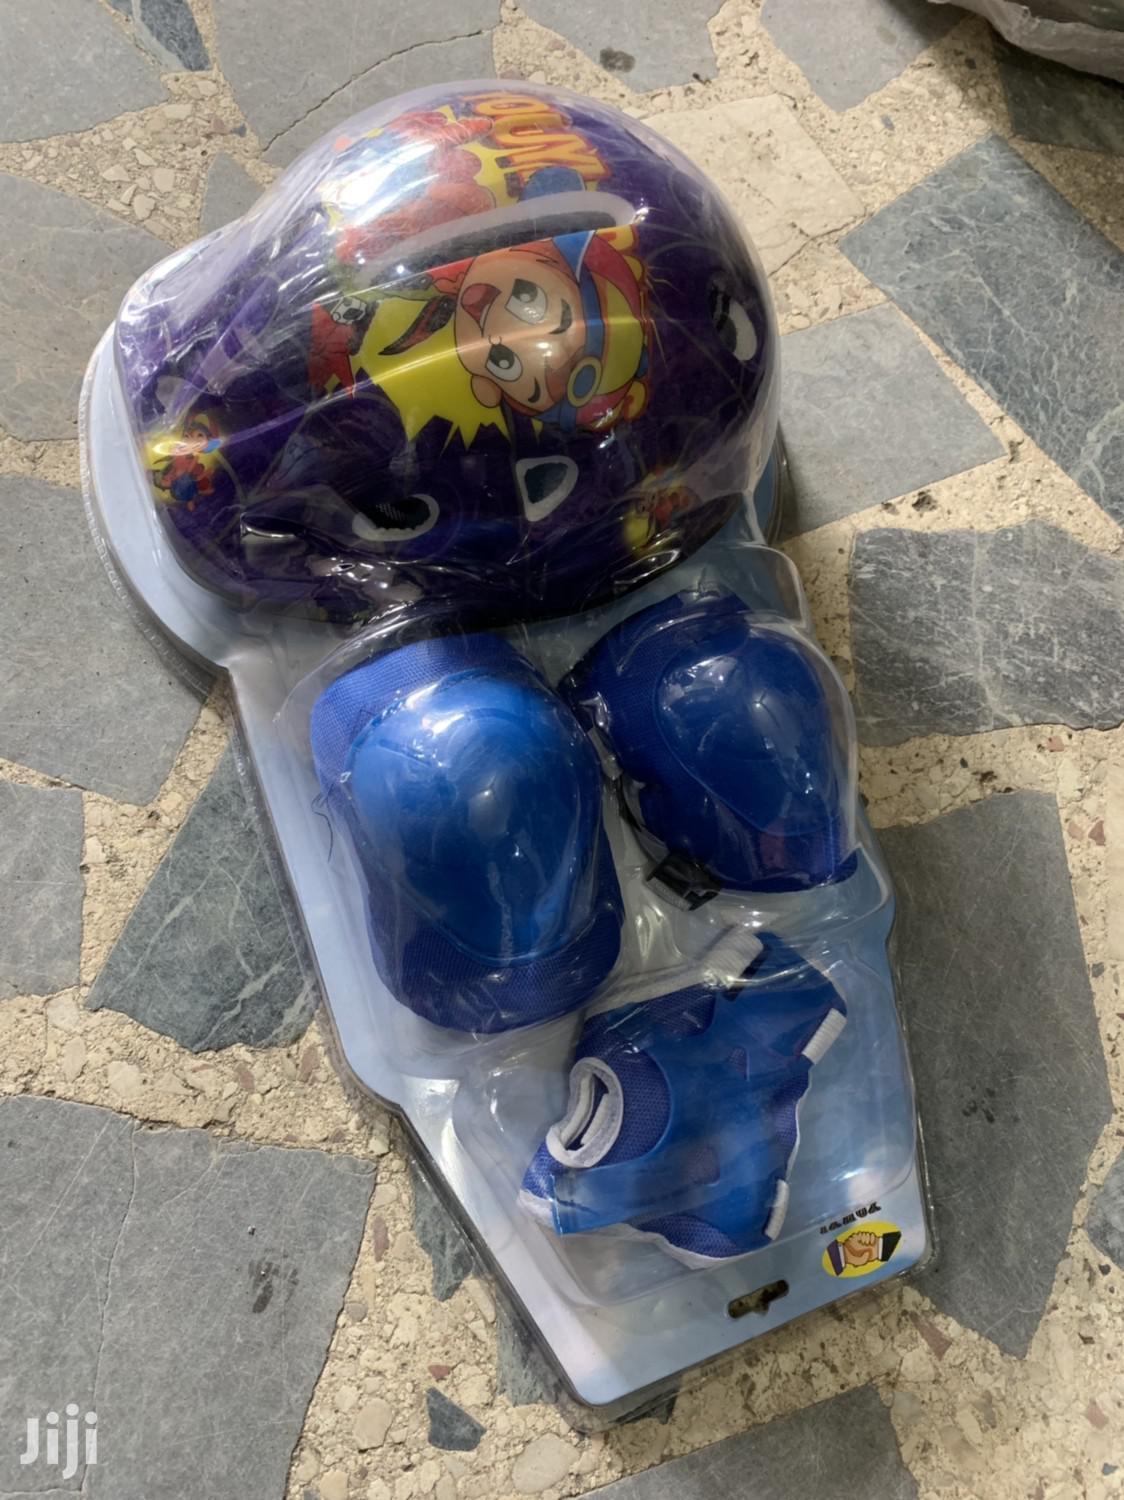 Cycling Helmet With Guard For Kids